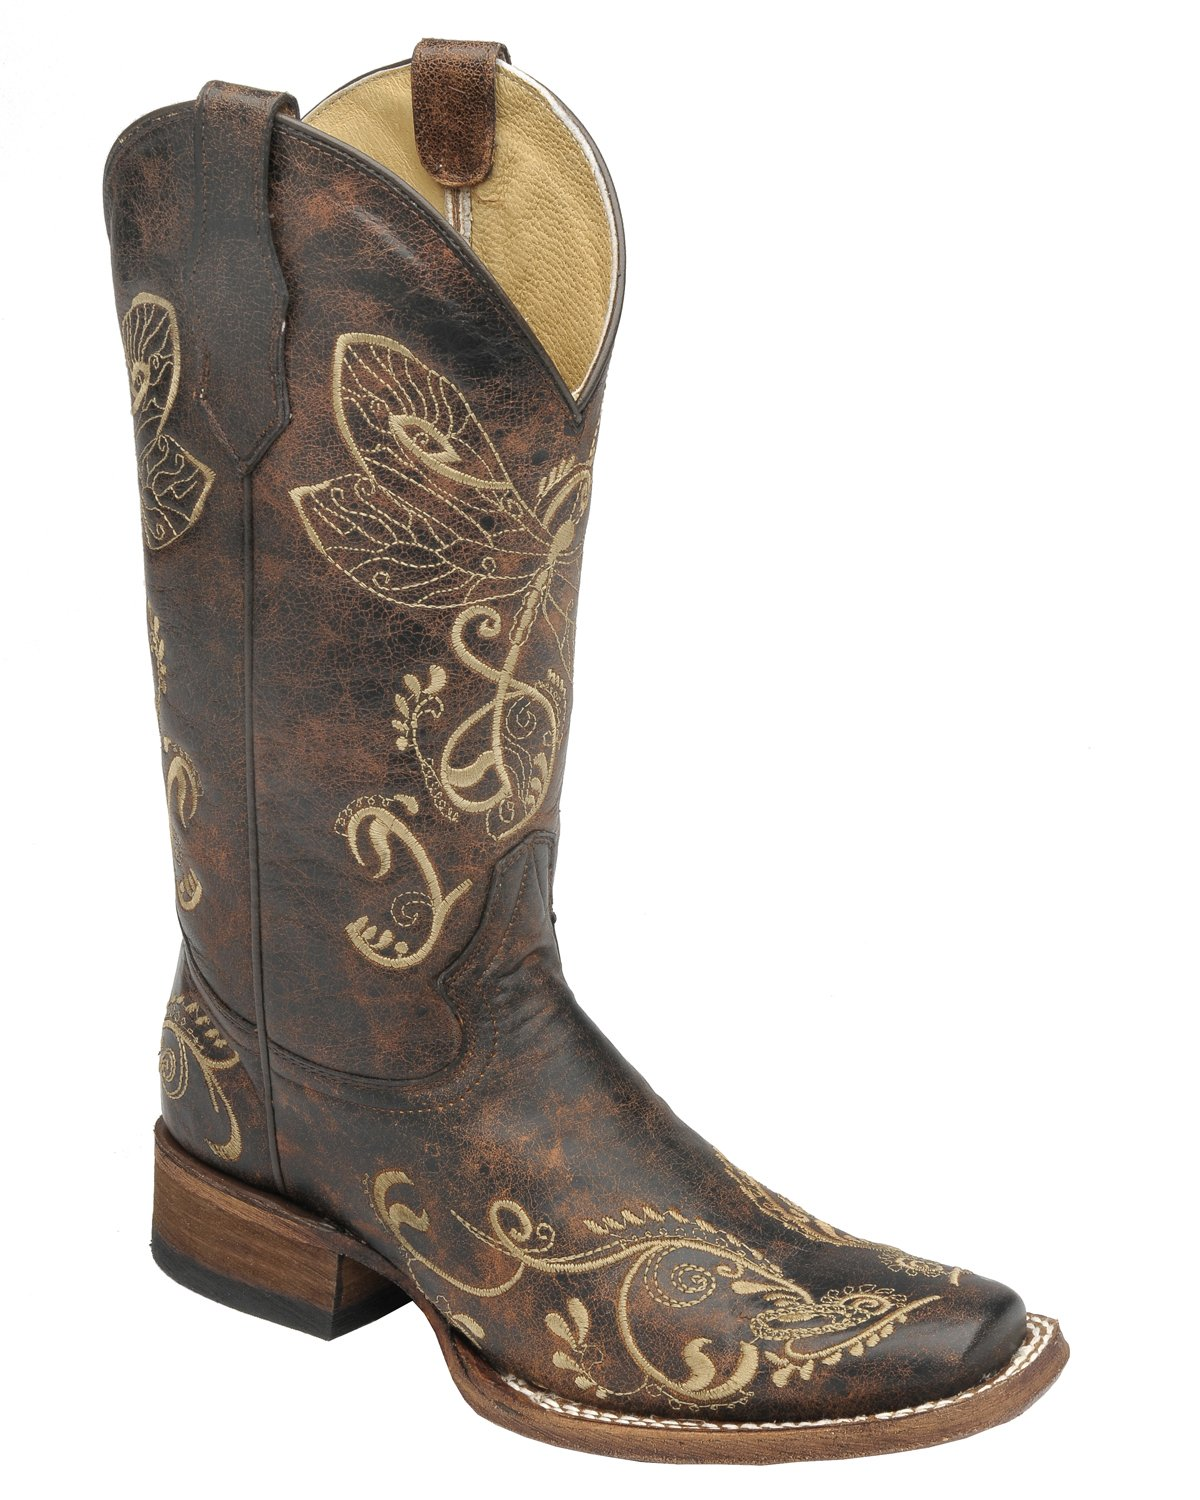 Corral Women's Circle G Distressed Bone Dragonfly Embroidered Square Toe Western Boot B00IYWAILM 8 B(M) US|Brown